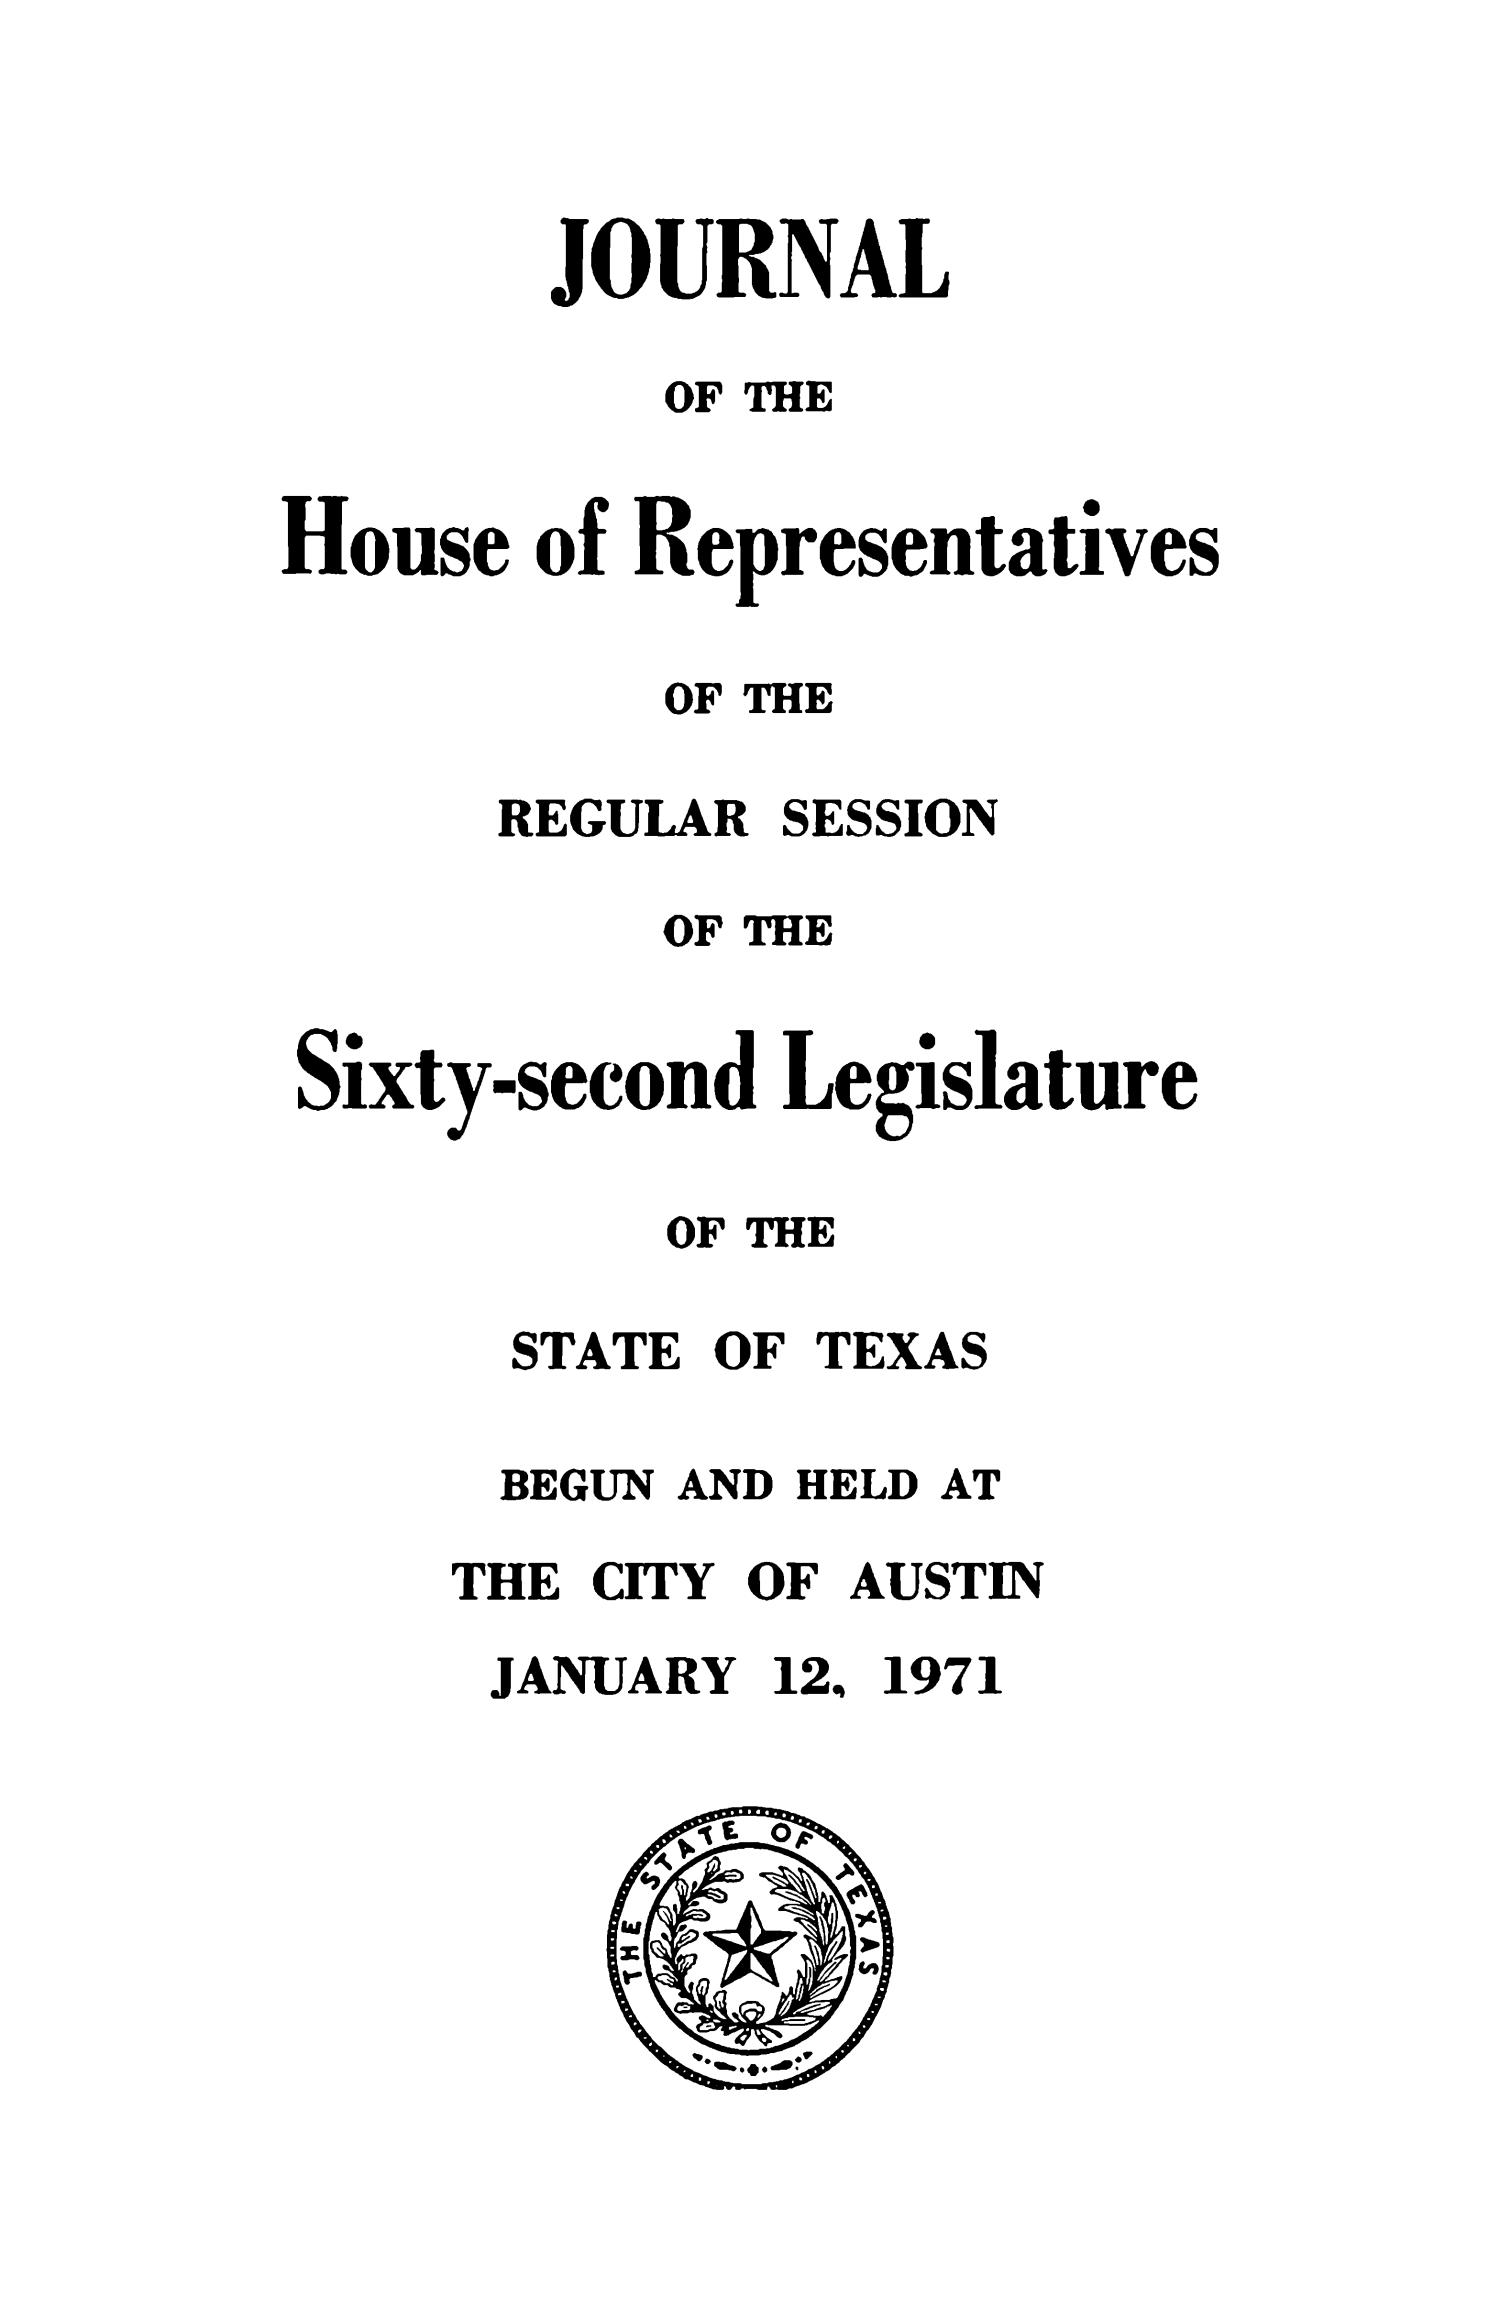 Journal of the House of Representatives of the Regular Session of the Sixty-Second Legislature of the State of Texas, Volume 2                                                                                                      Title Page